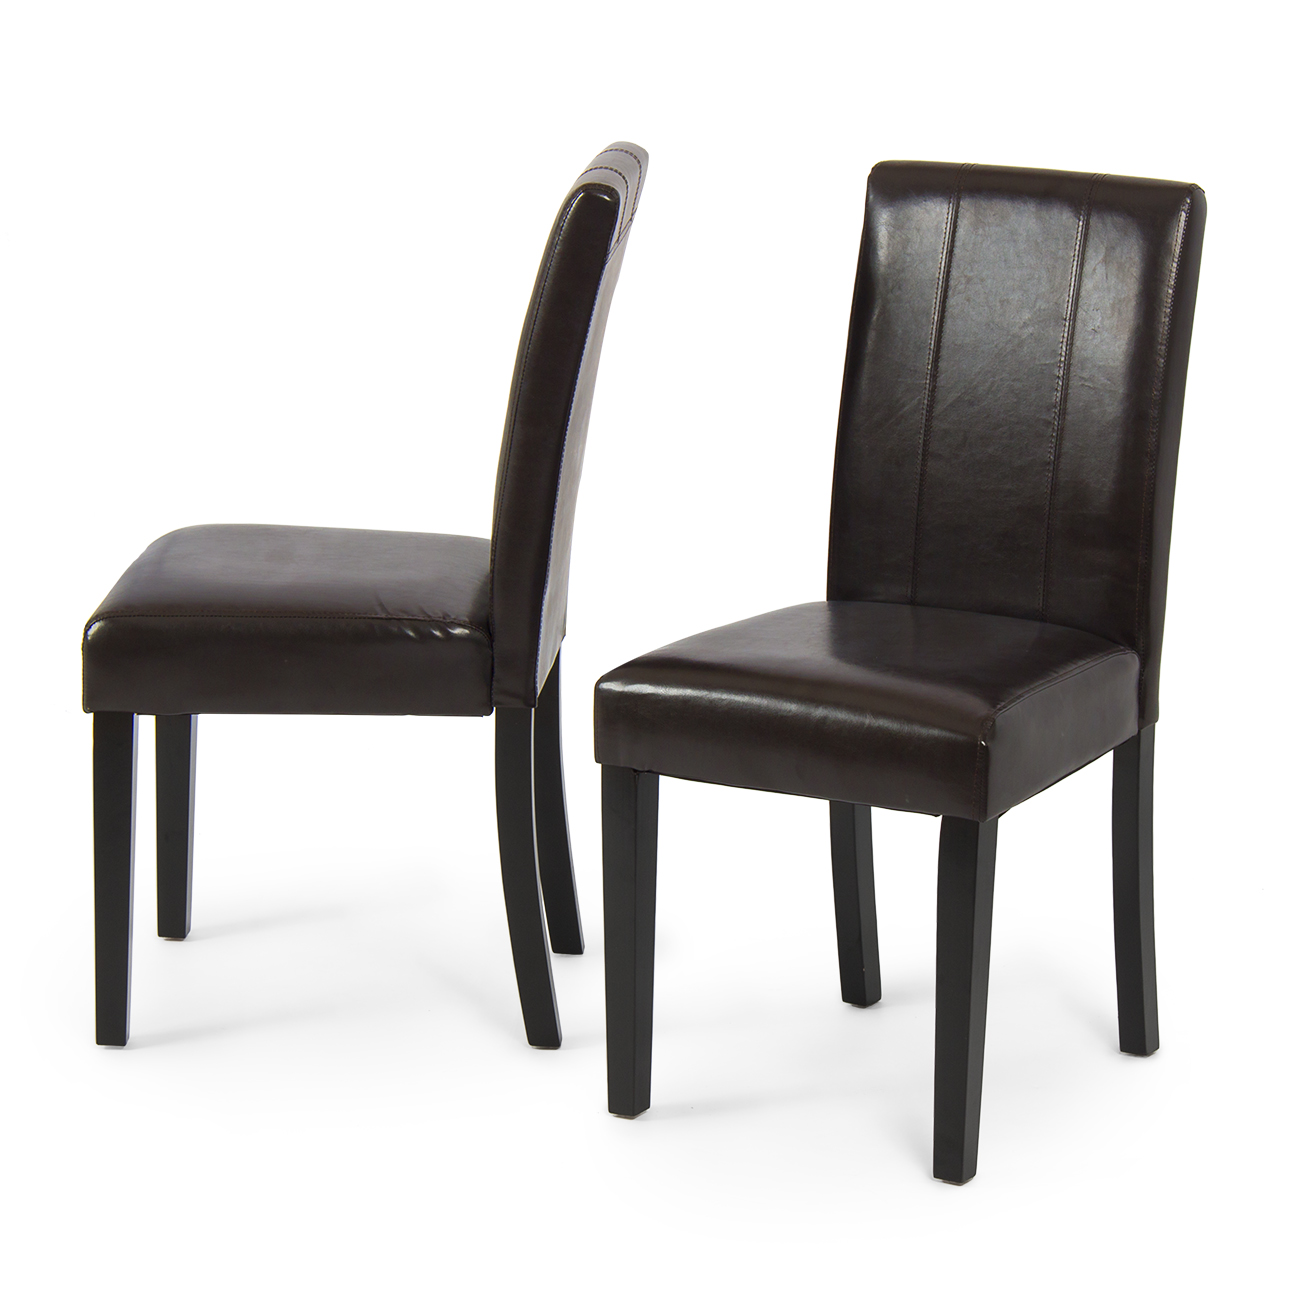 Elegant Chairs Set Of 2 Elegant Modern Design Leather Parsons Dining